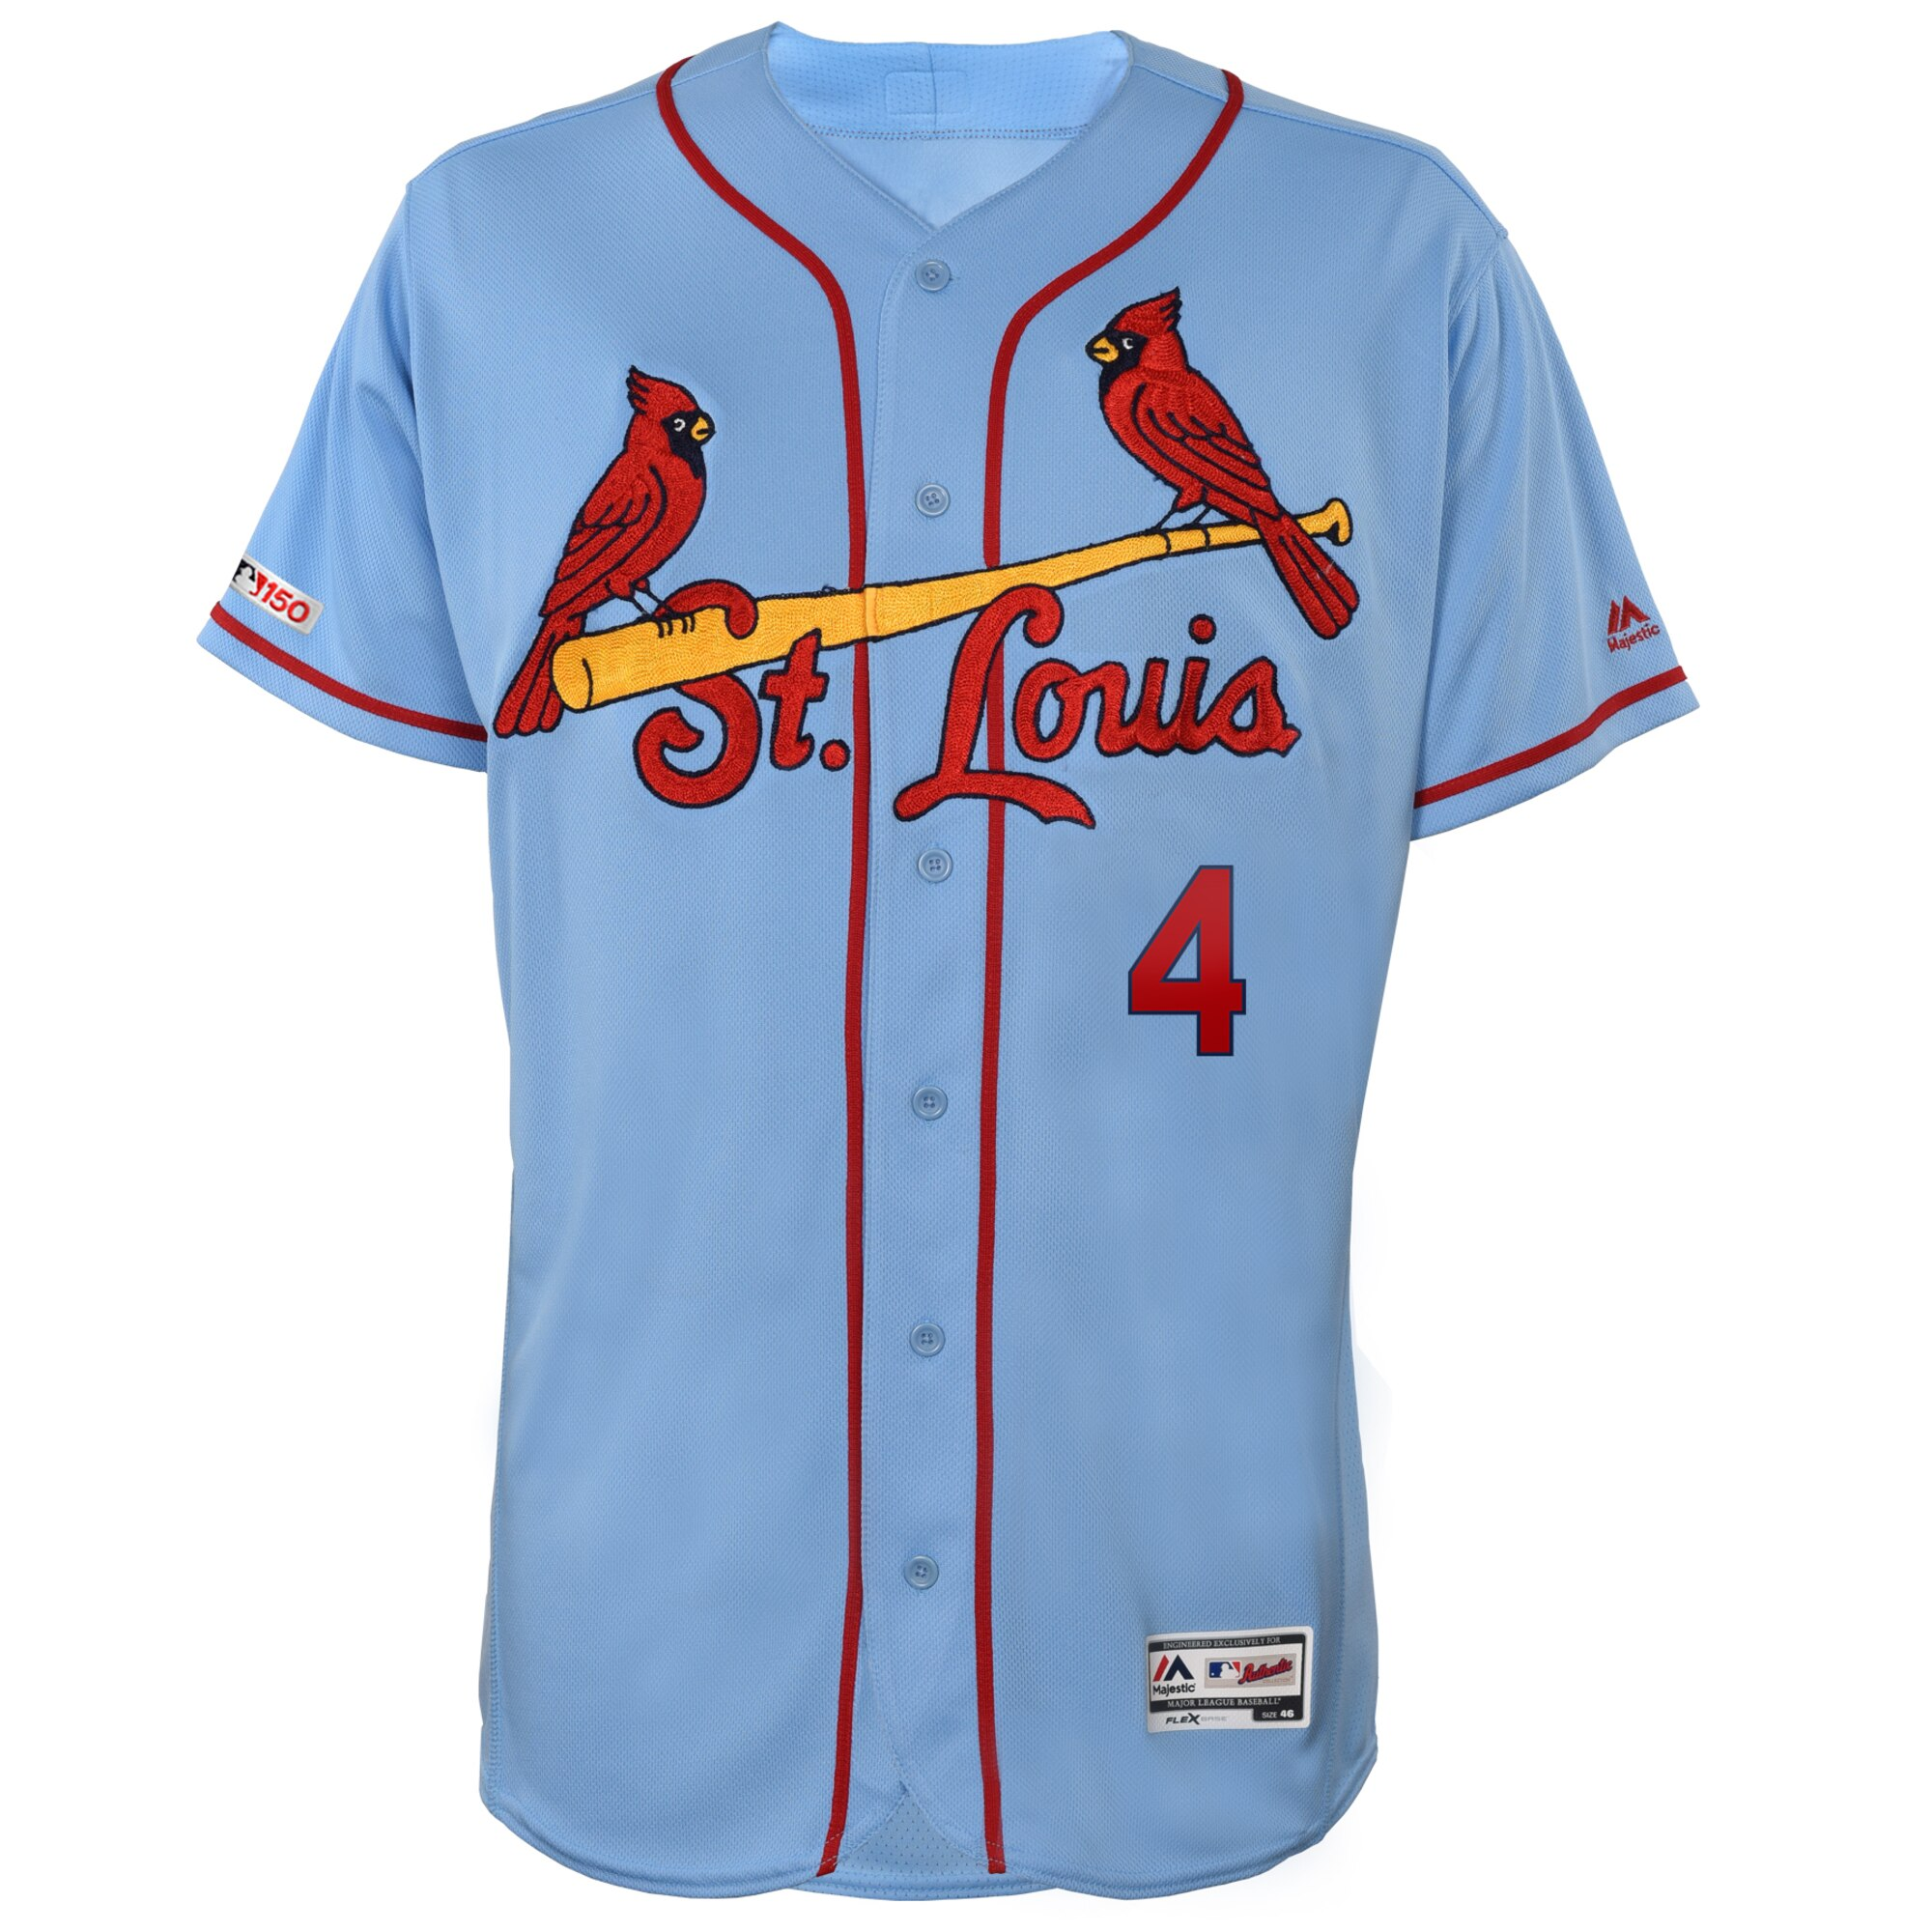 info for 41fdf 6afa5 Majestic St. Louis Cardinals Yadier Molina Alt. Base Authentic Jersey